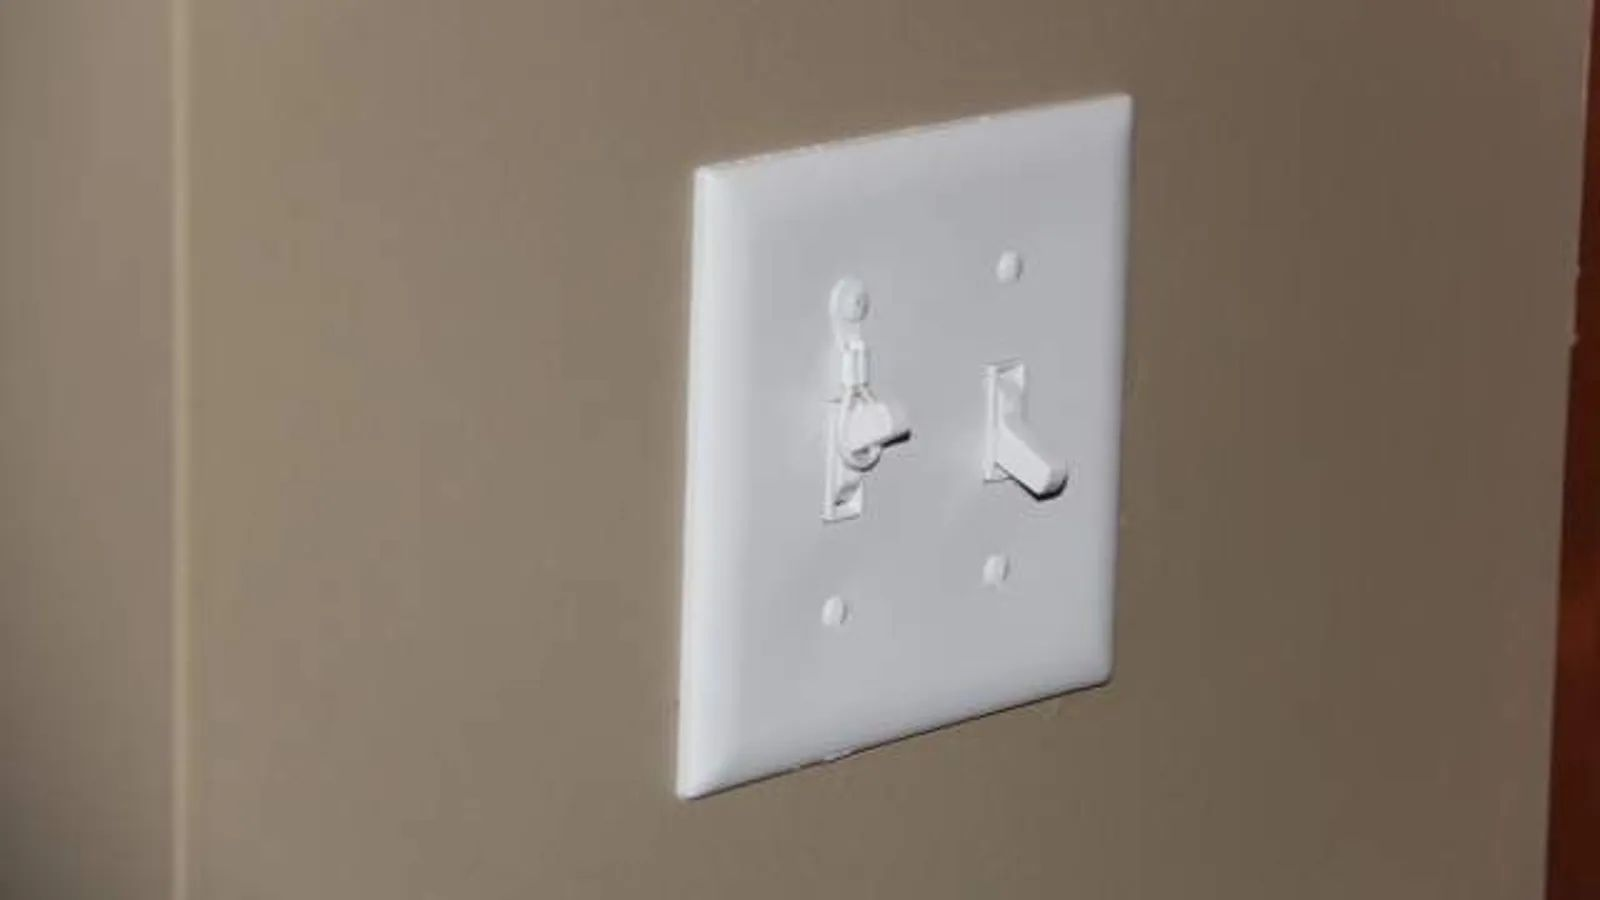 wire a light switch with outlet